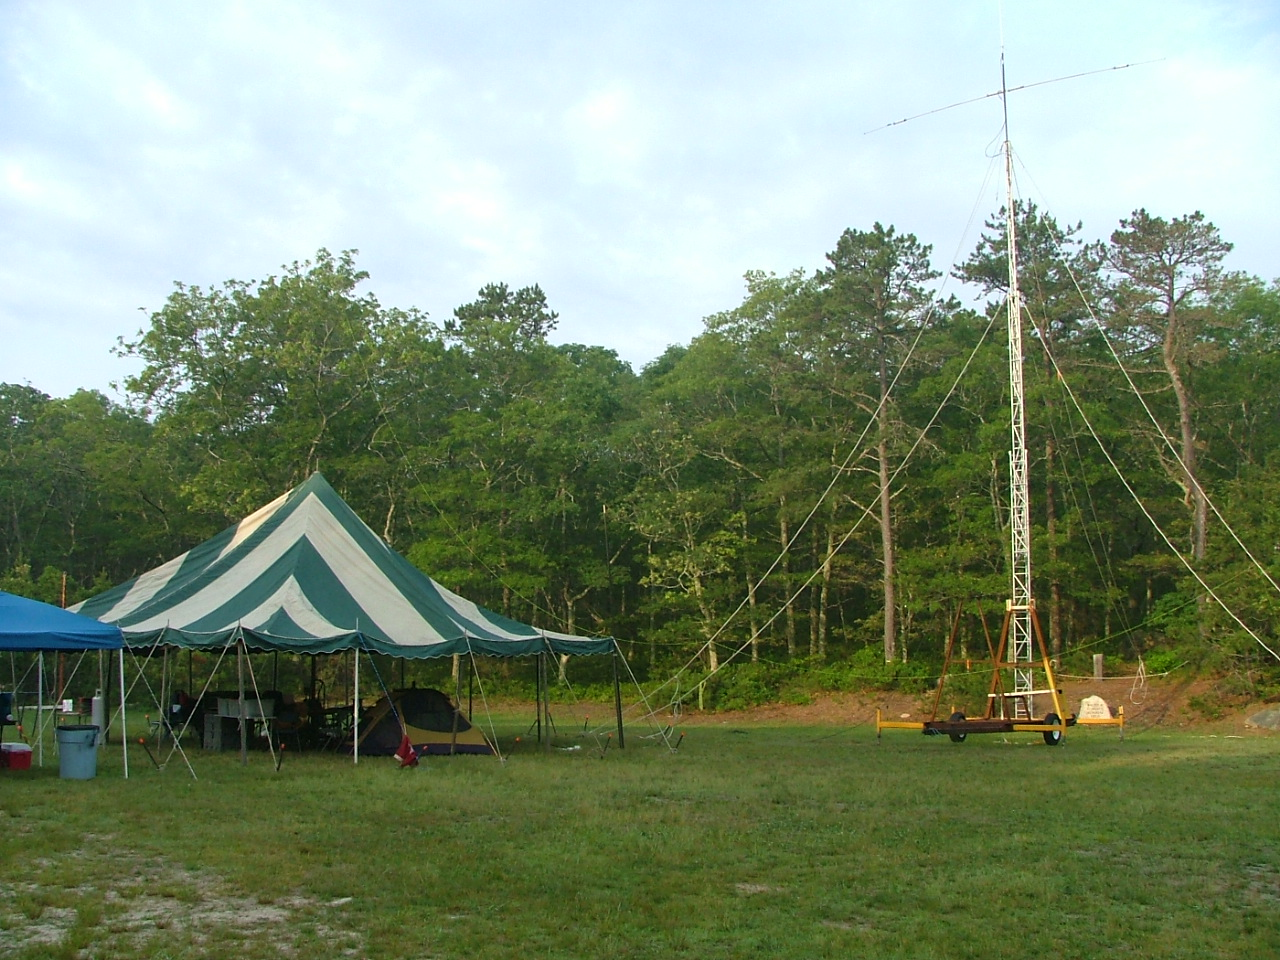 30'x30' tent is our operating center